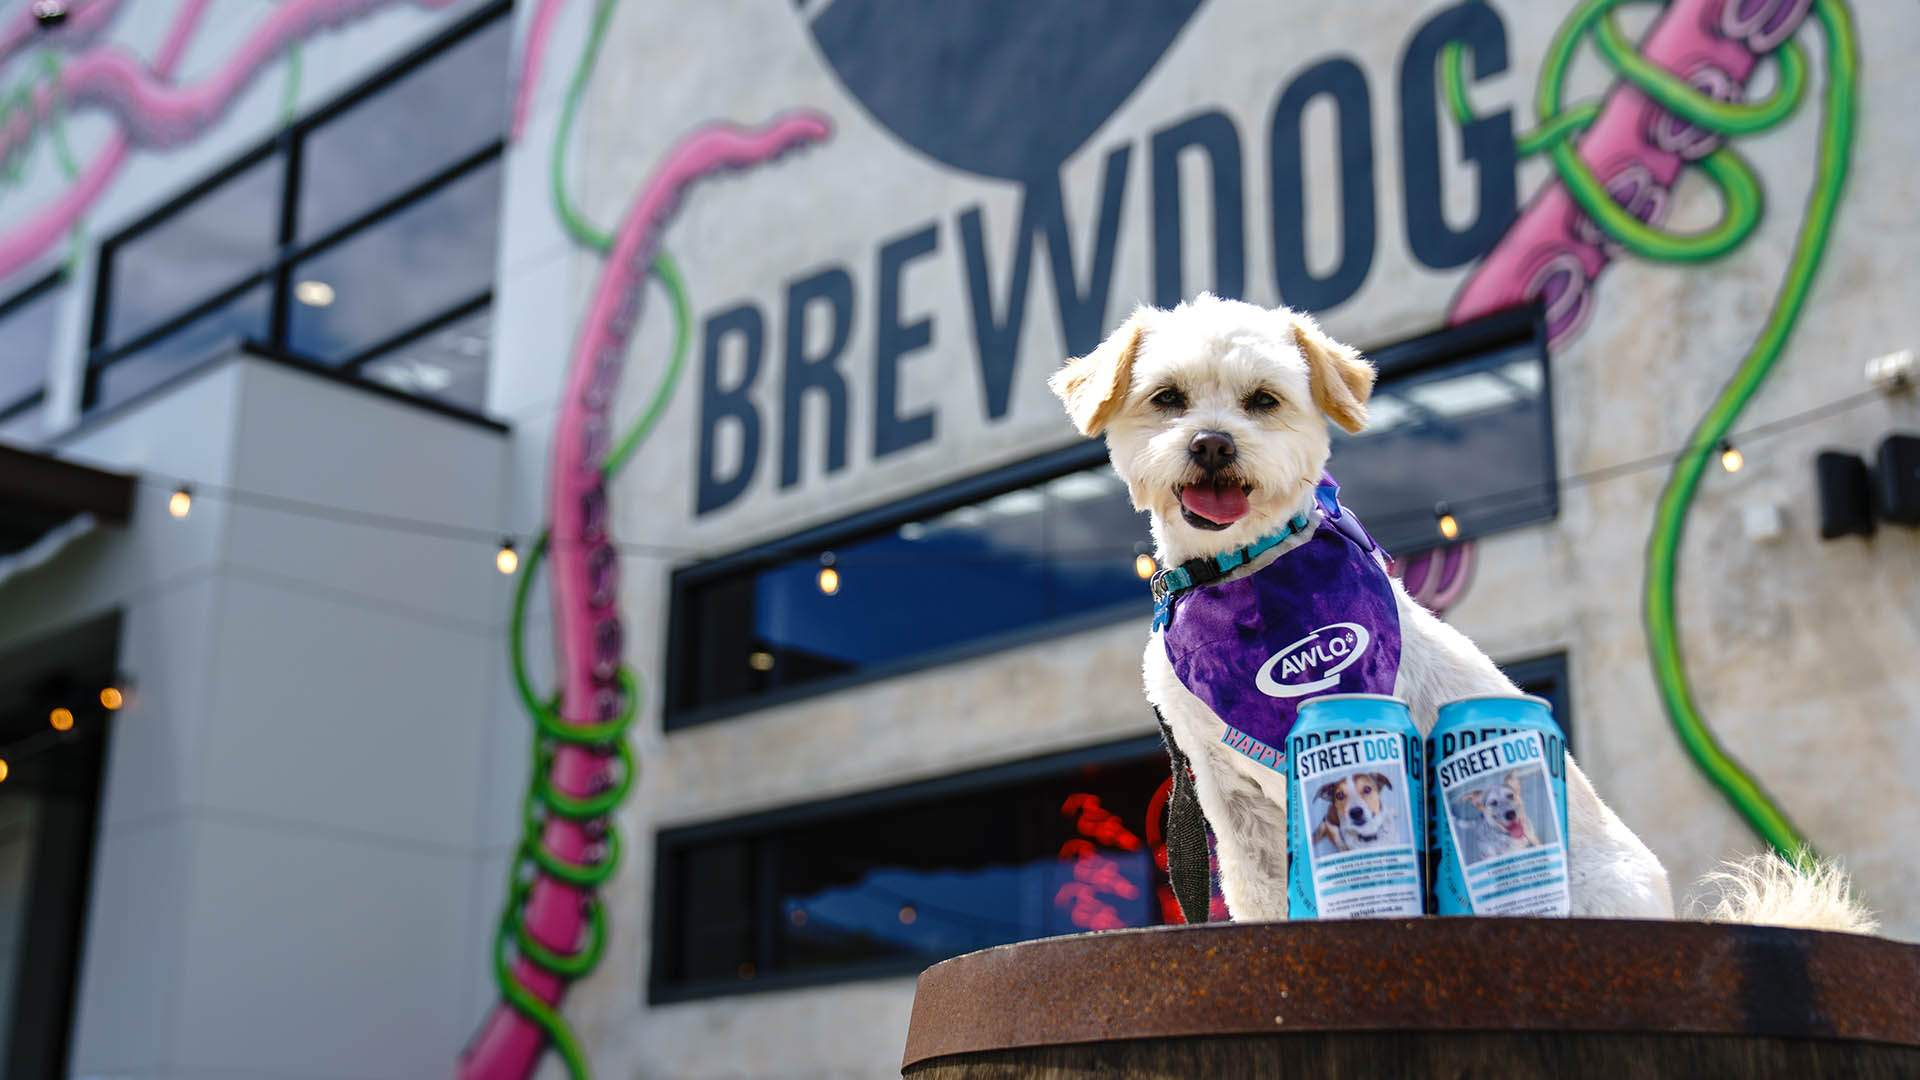 BrewDog Has Given Its Cans a Makeover to Profile Cute Pooches Currently Up for Adoption